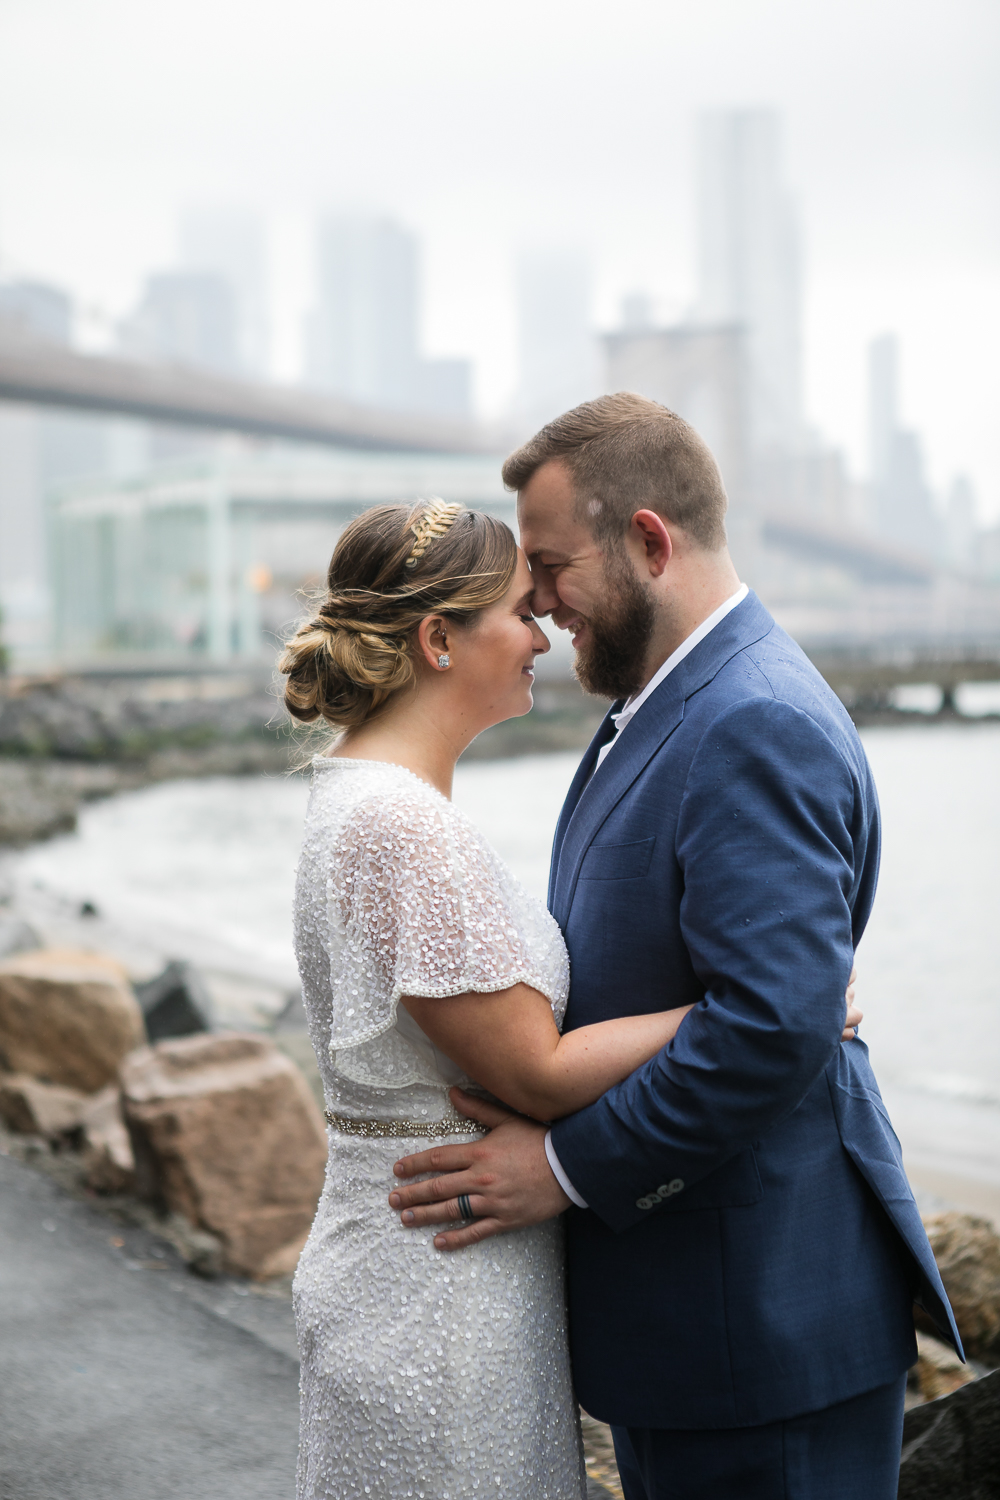 Wedding photos in front of the Brooklyn Bridge. New York Bride in a short wedding dress and groom in a blue suit pose in front of the Brooklyn Bridge. | Intimate Wedding at the Malthouse in Manhattan, New York City.